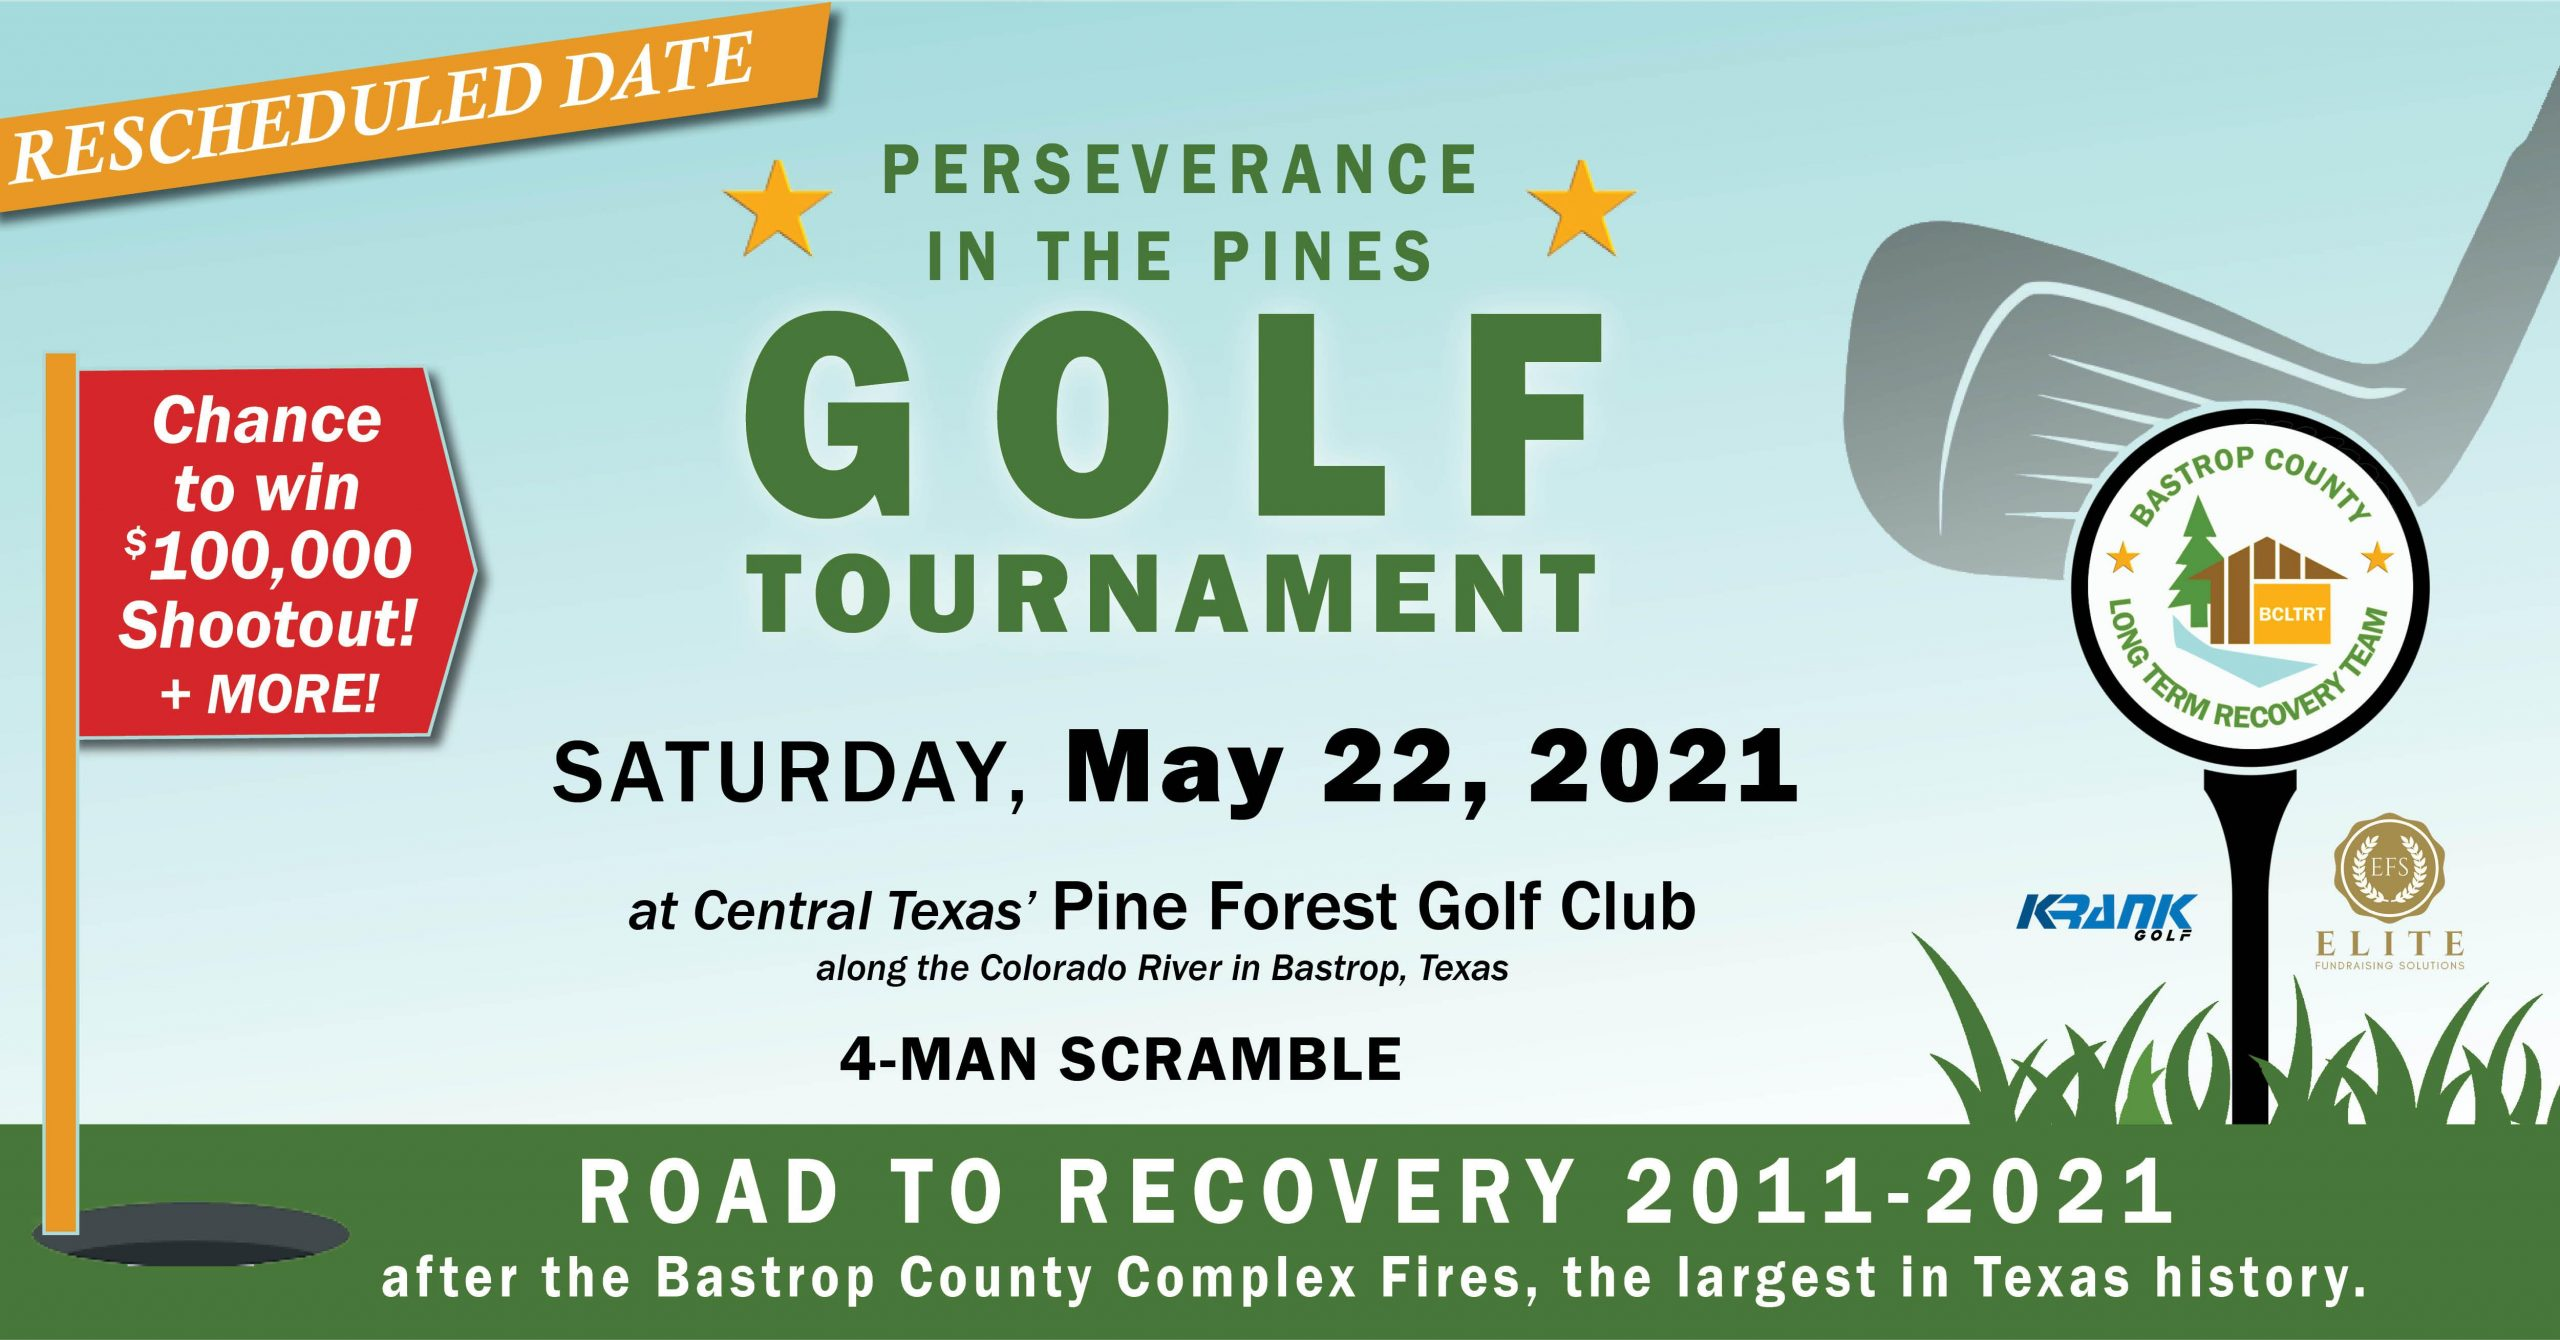 Perseverance in the Pines - Golf Tournament